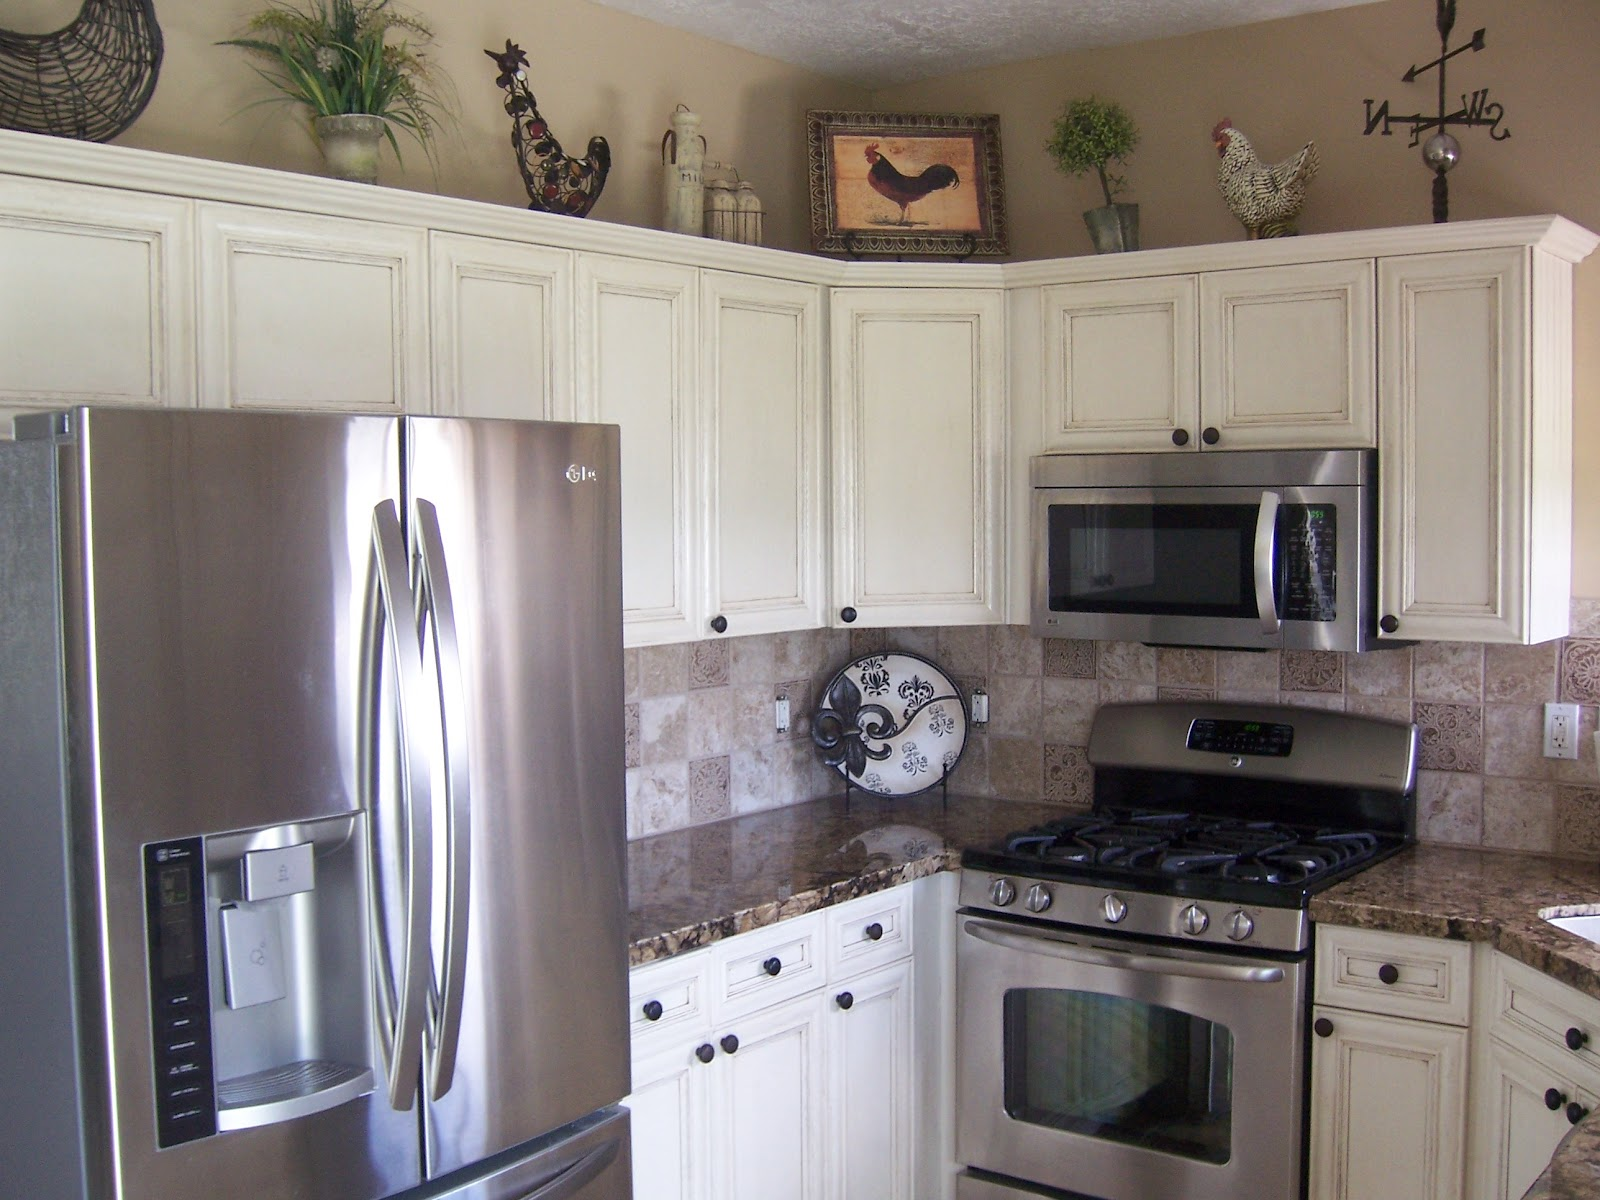 Painted Kitchen Cabinets With Stainless Steel Appliances